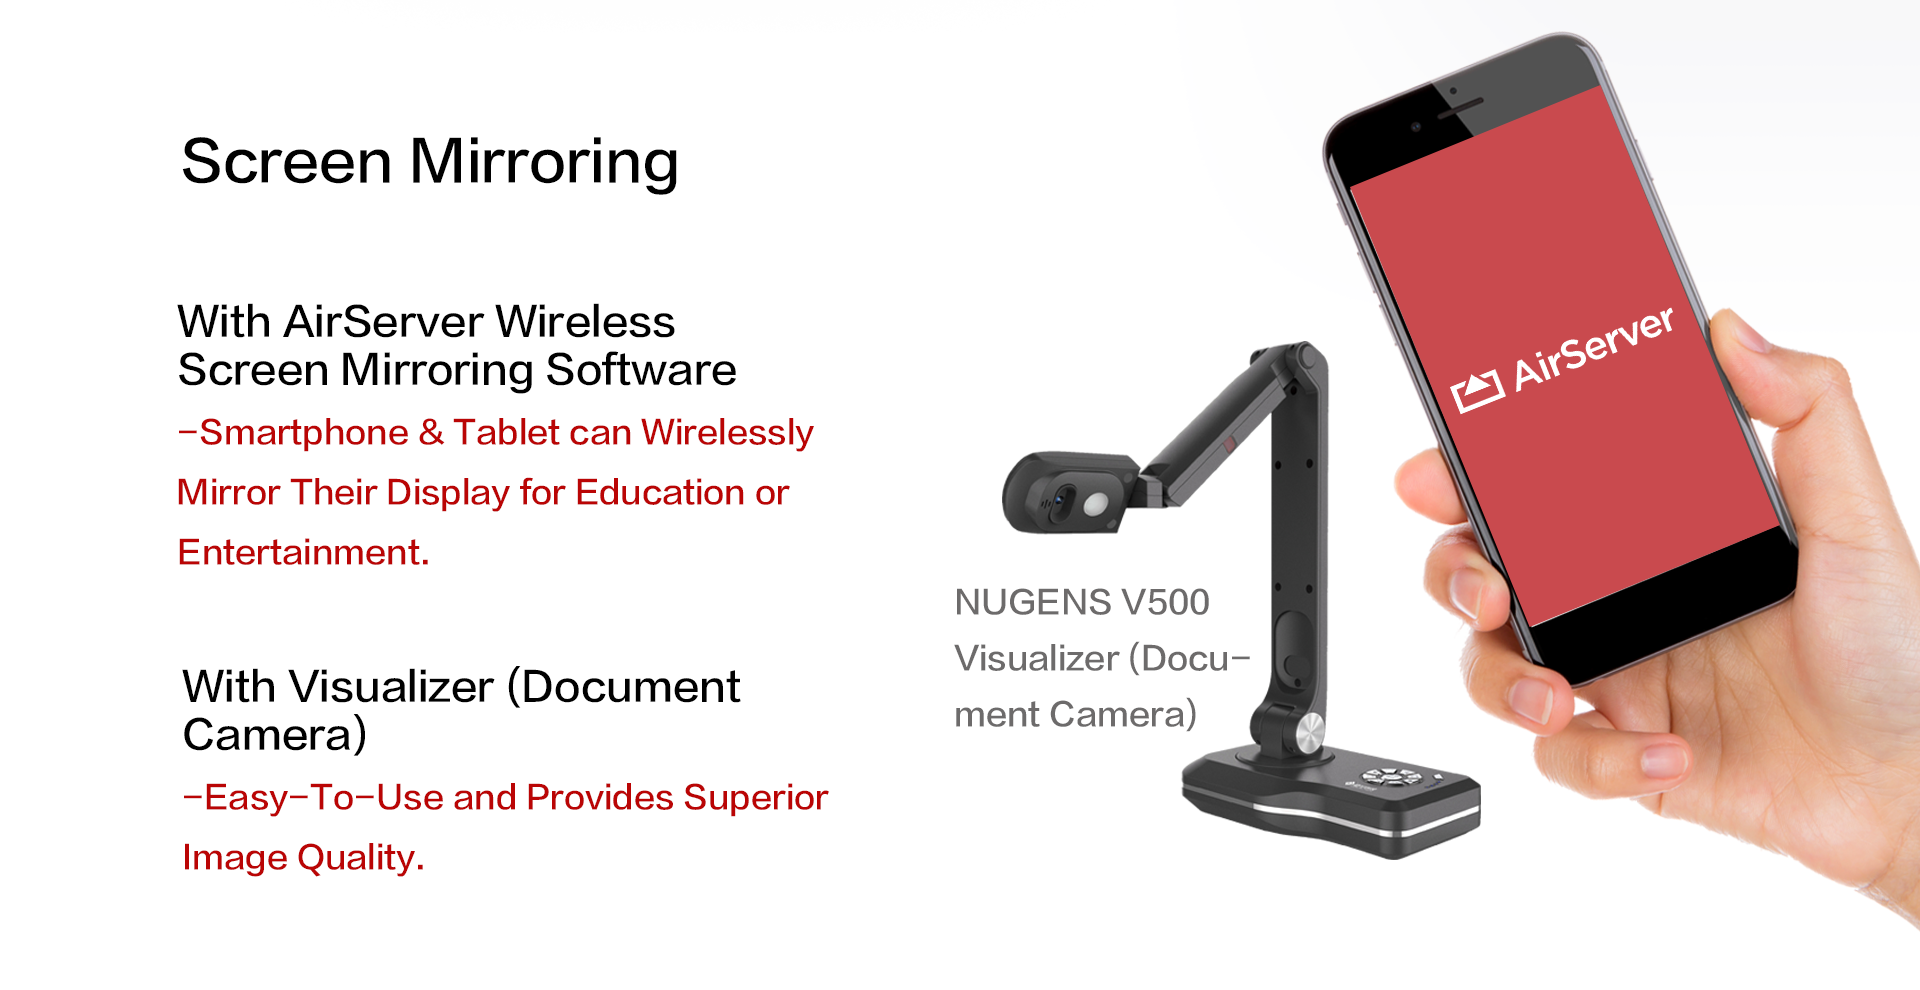 With AirServer Wireless Screen Mirroring Software,With Visualizer (Document Camera)